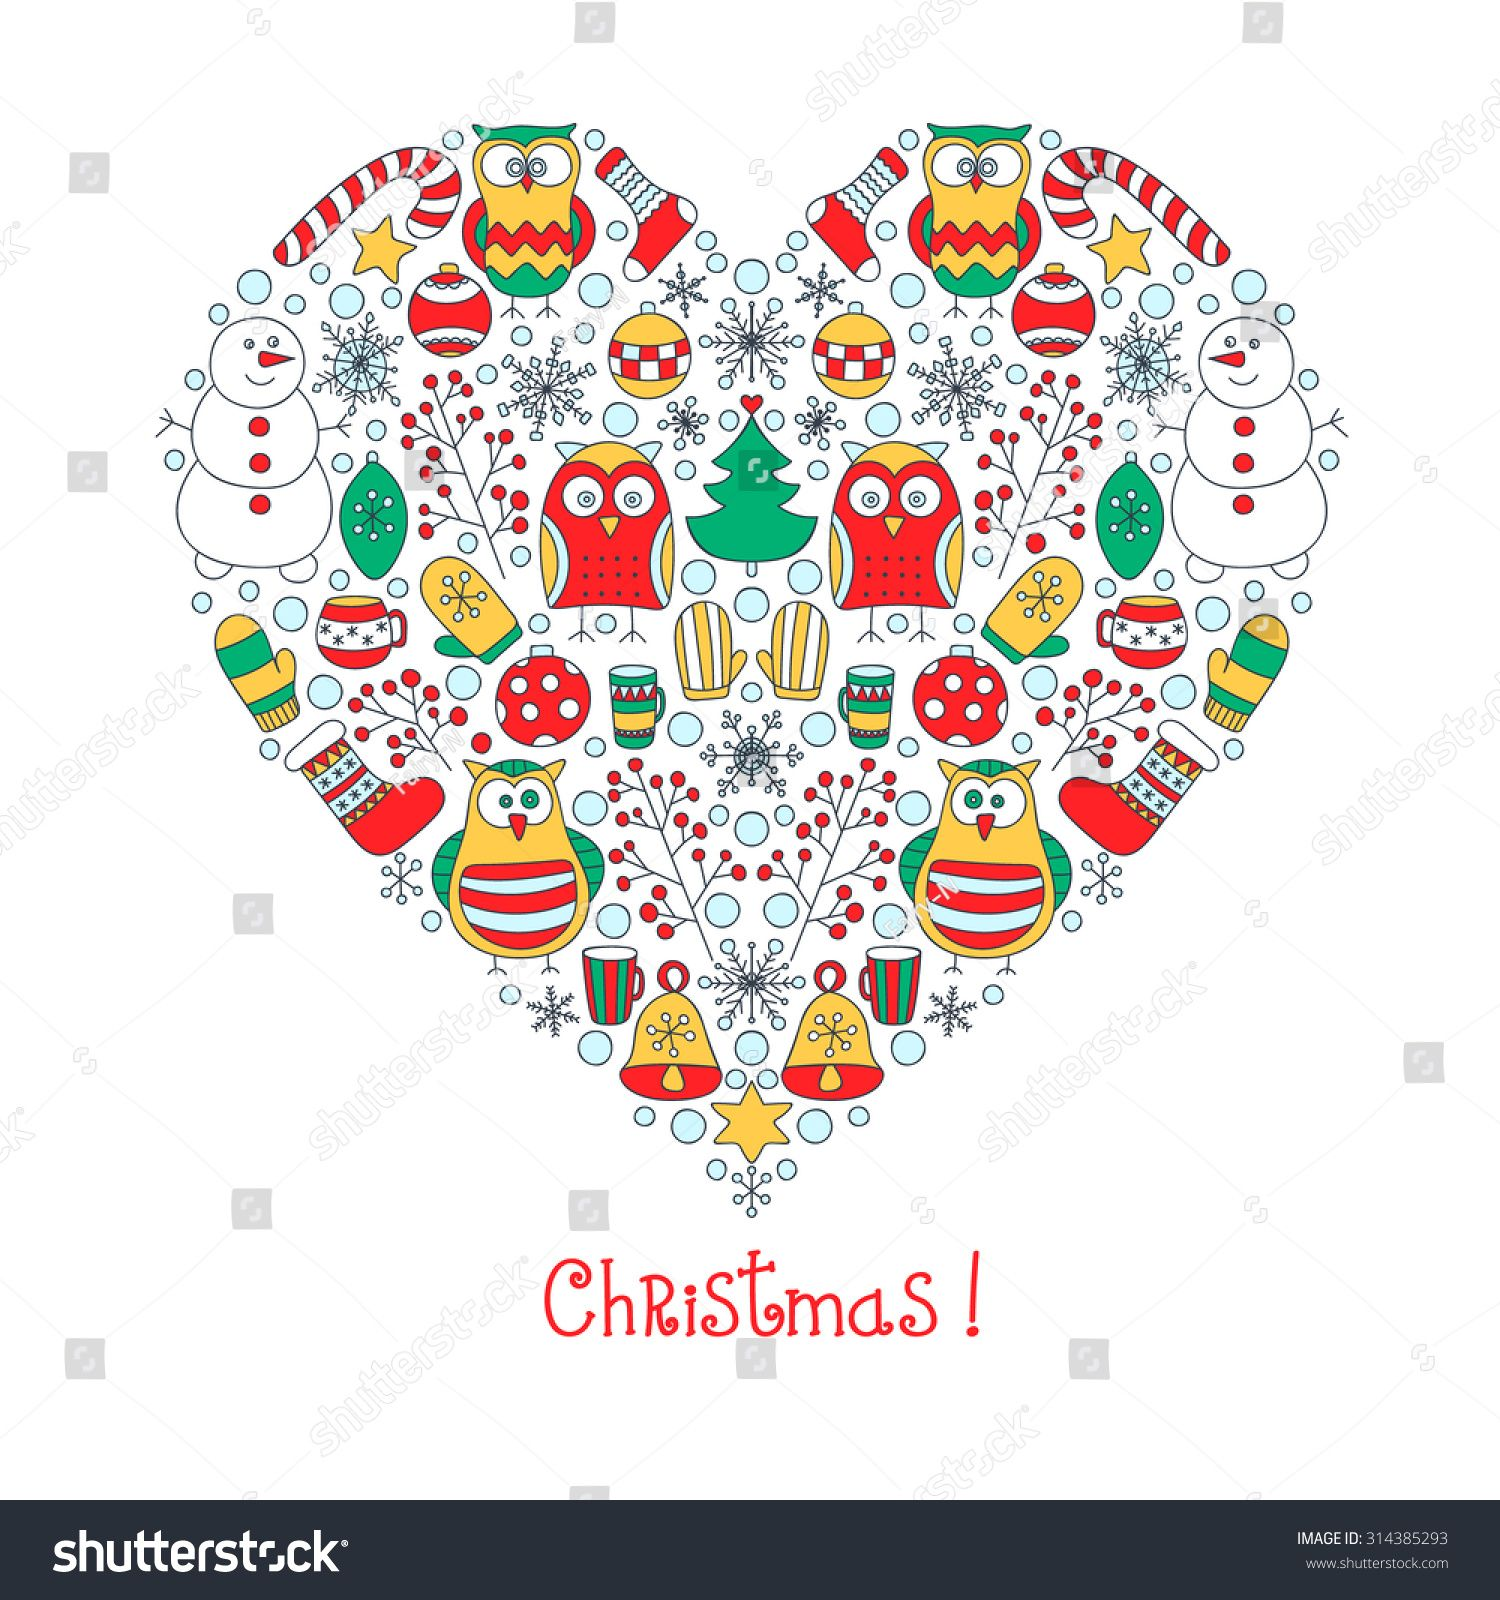 Christmas Heart Vector.Christmas Heart Vector Hand Drawn Heart With Doodle Winter